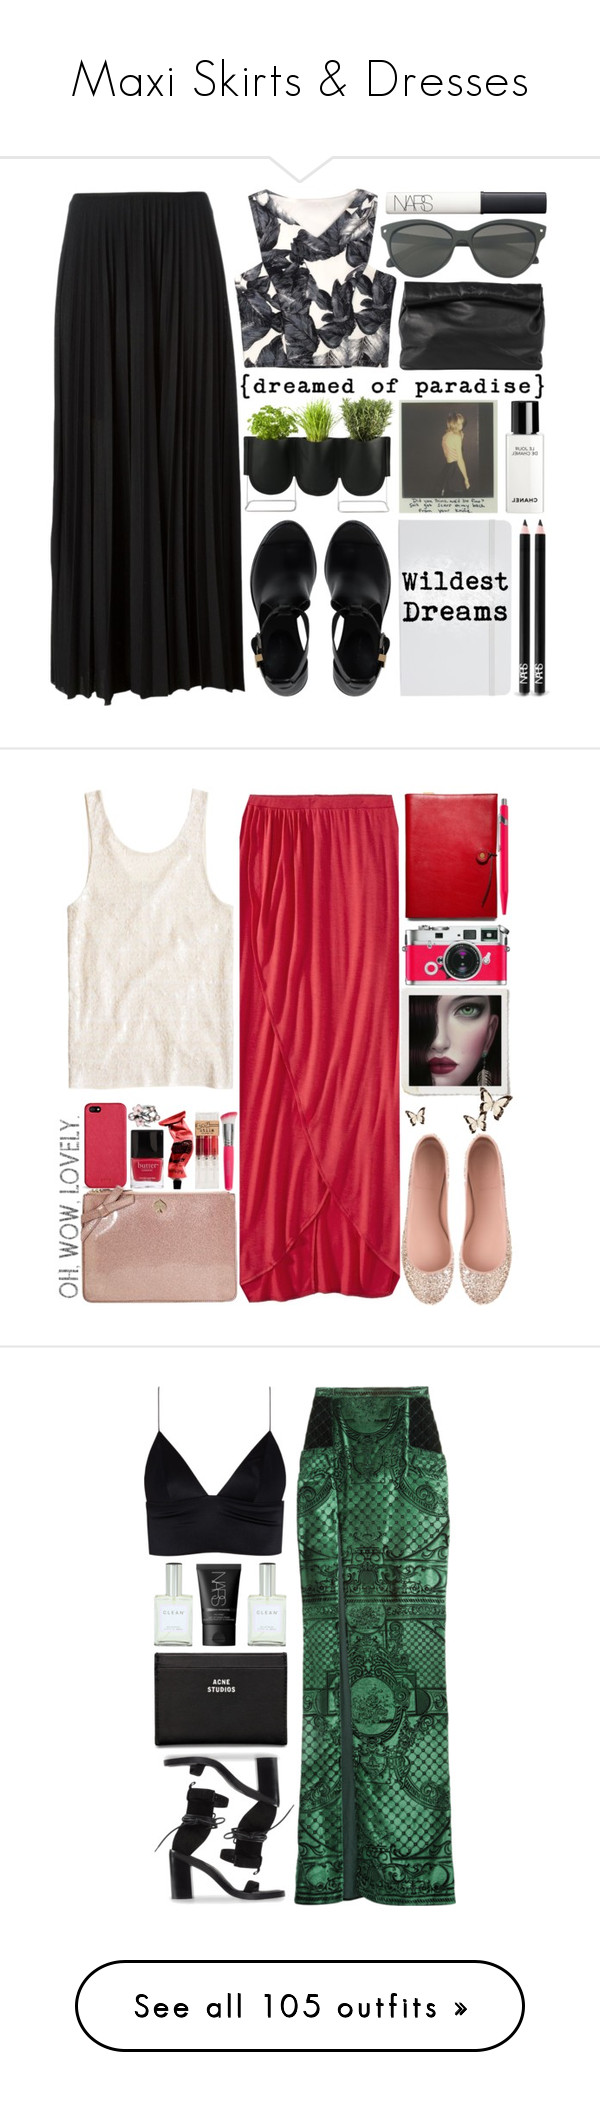 """""""Maxi Skirts & Dresses"""" by prettybrunette ❤ liked on Polyvore featuring LongSkirts, dresses, maxiskirts, Marie Turnor, Theory, Authentics, Chanel, Balenciaga, ASOS and NARS Cosmetics"""